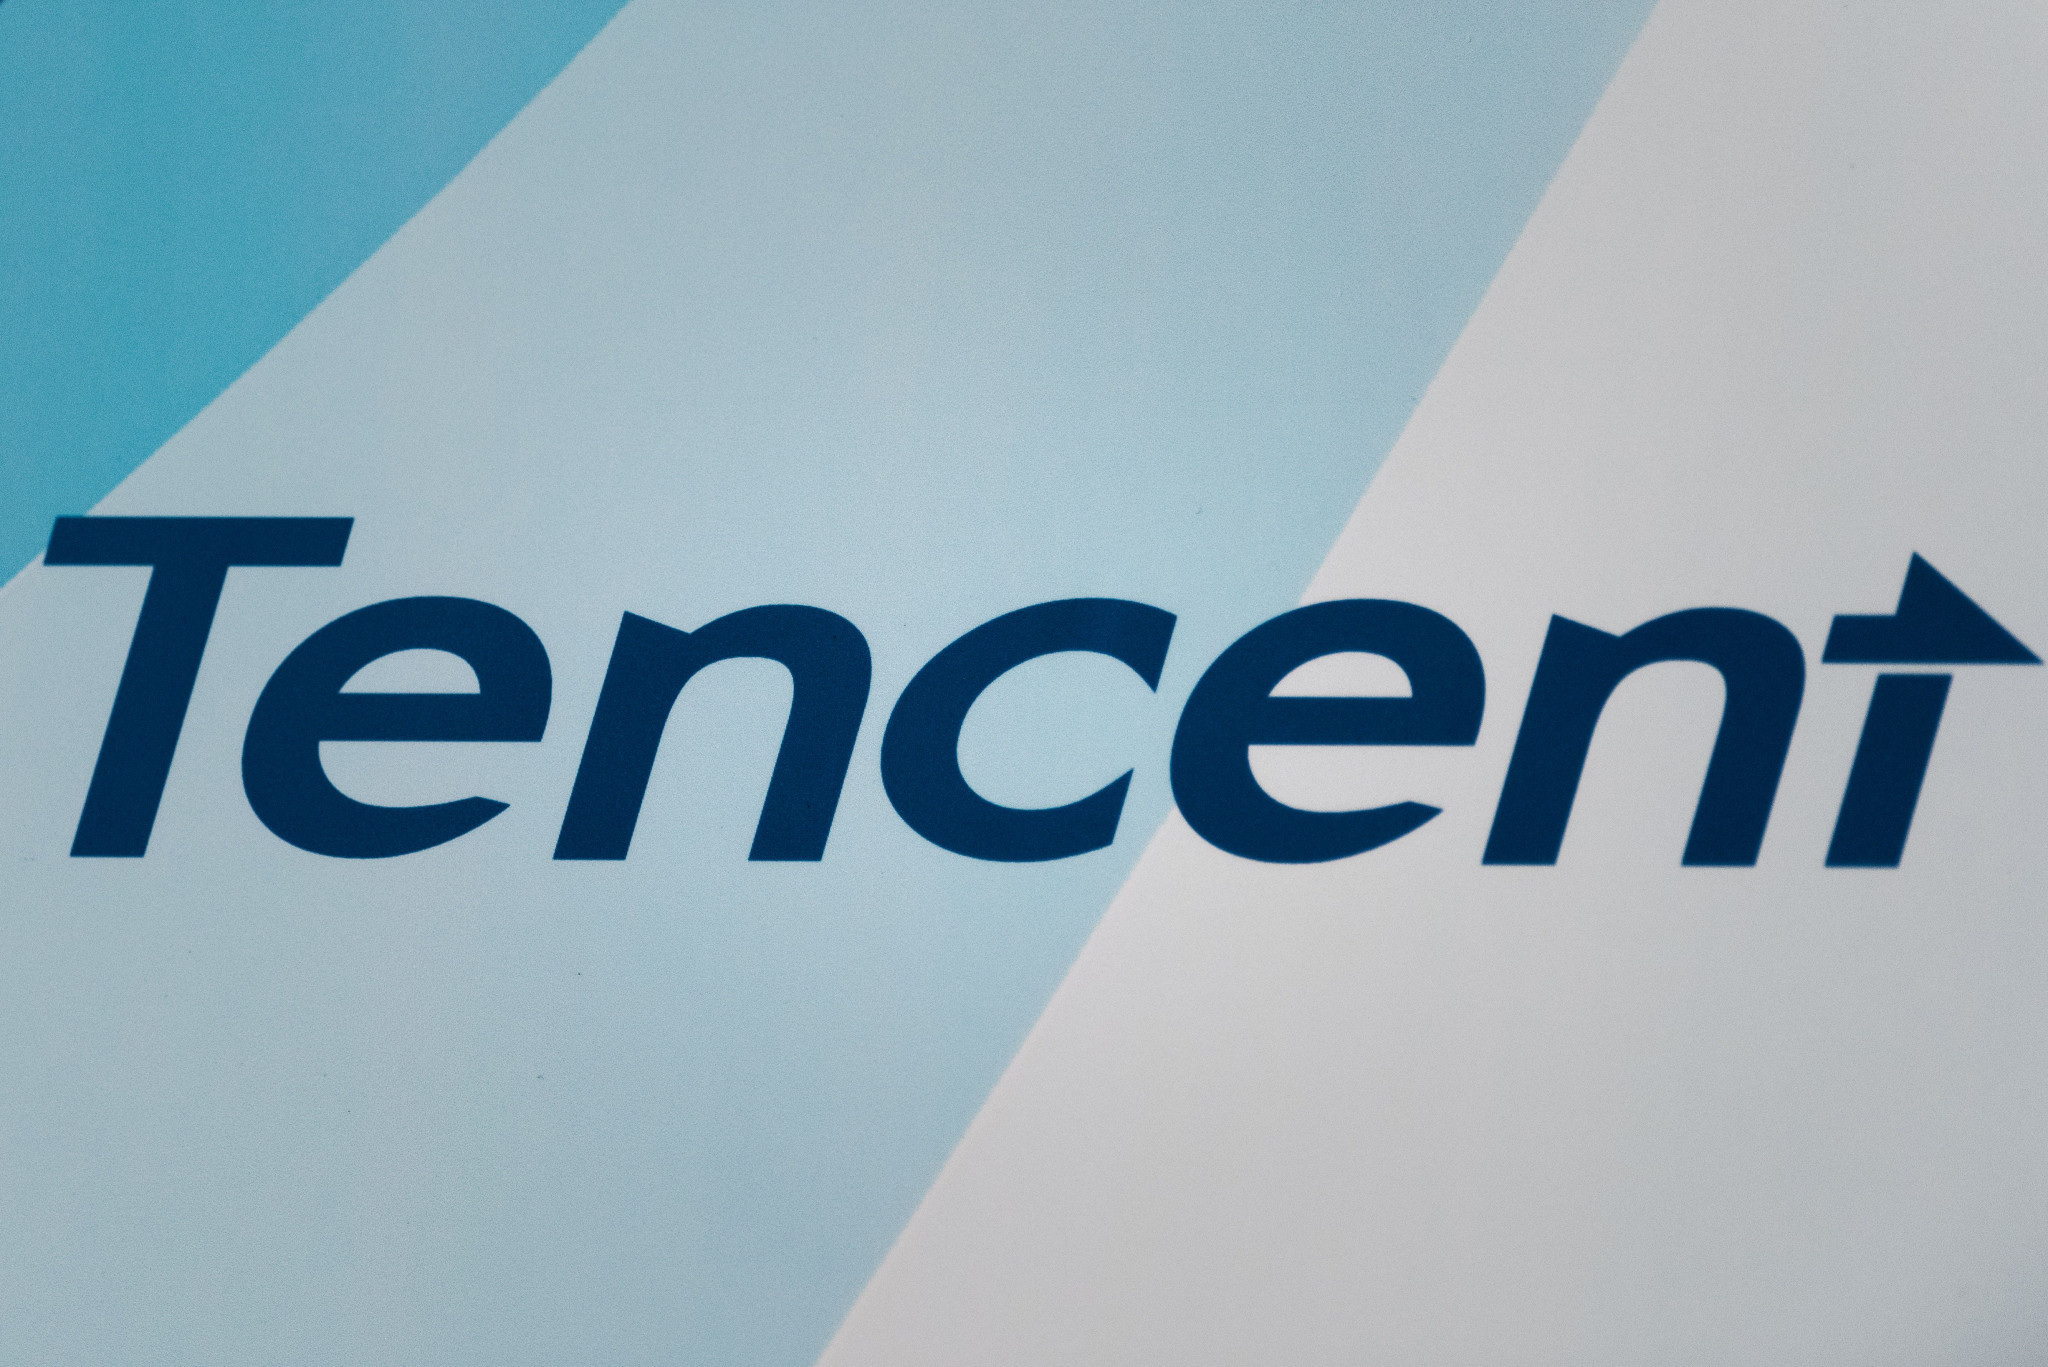 Chengdu 2021 sponsor Tencent unveils solid financial performance